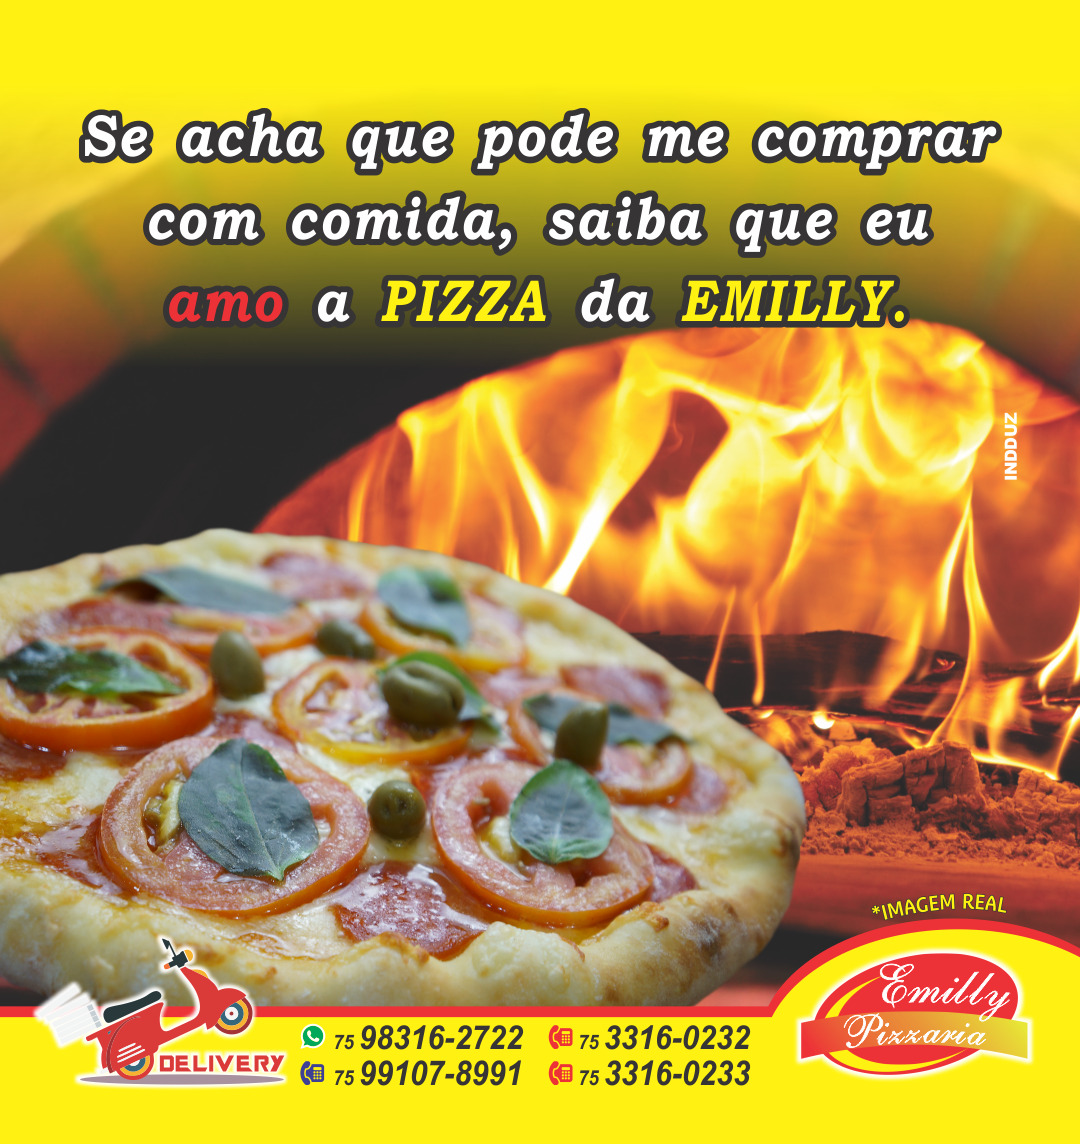 Pizzaria Emilly